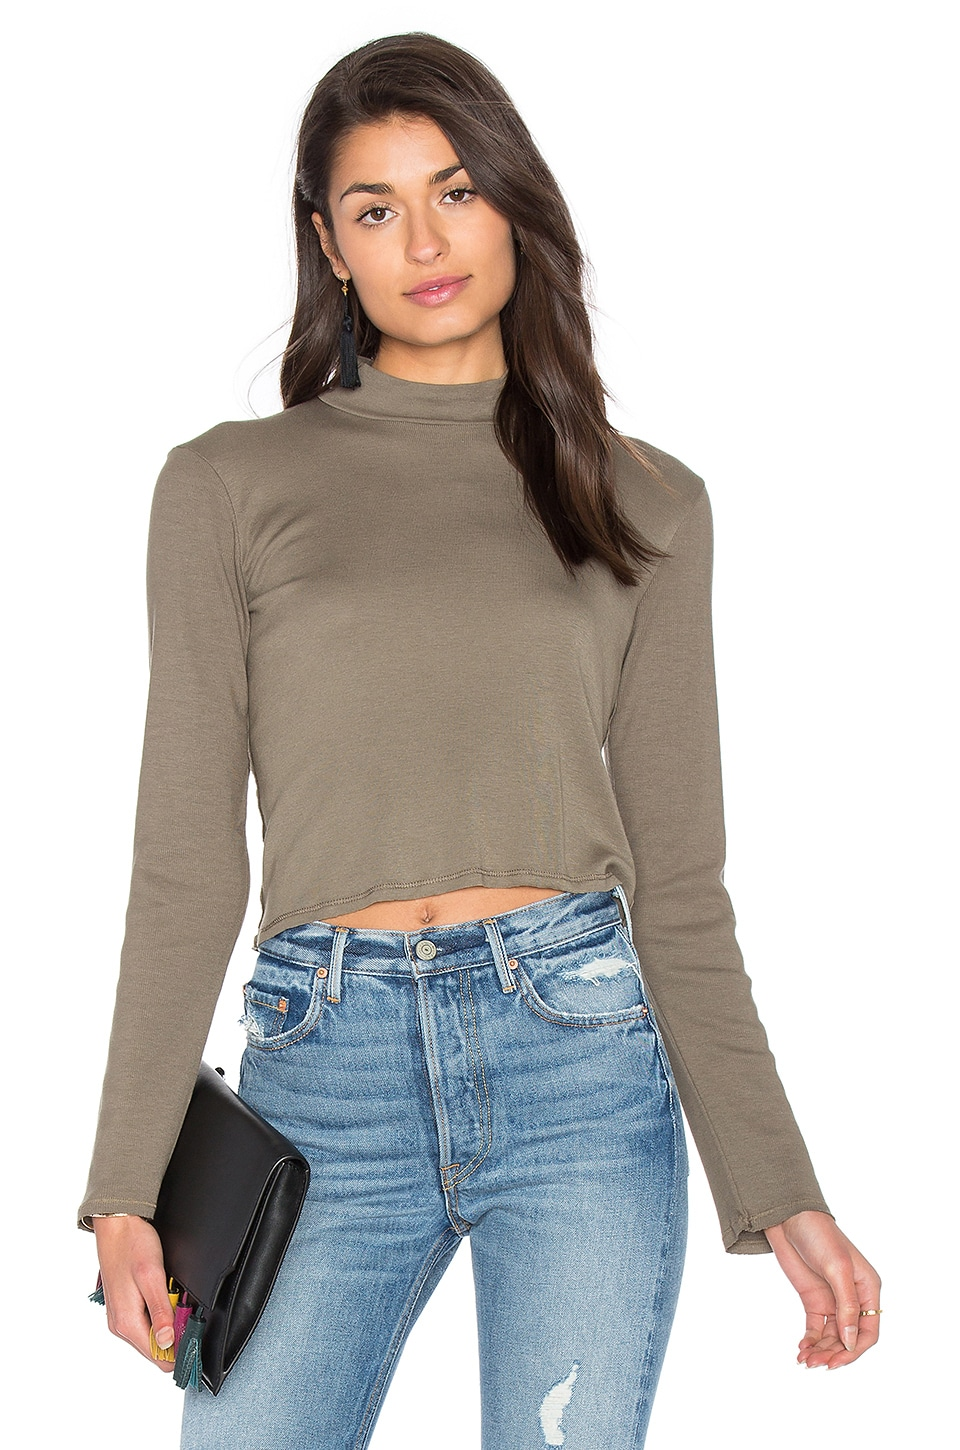 Splendid 1x1 Cropped Turtleneck in Military Olive